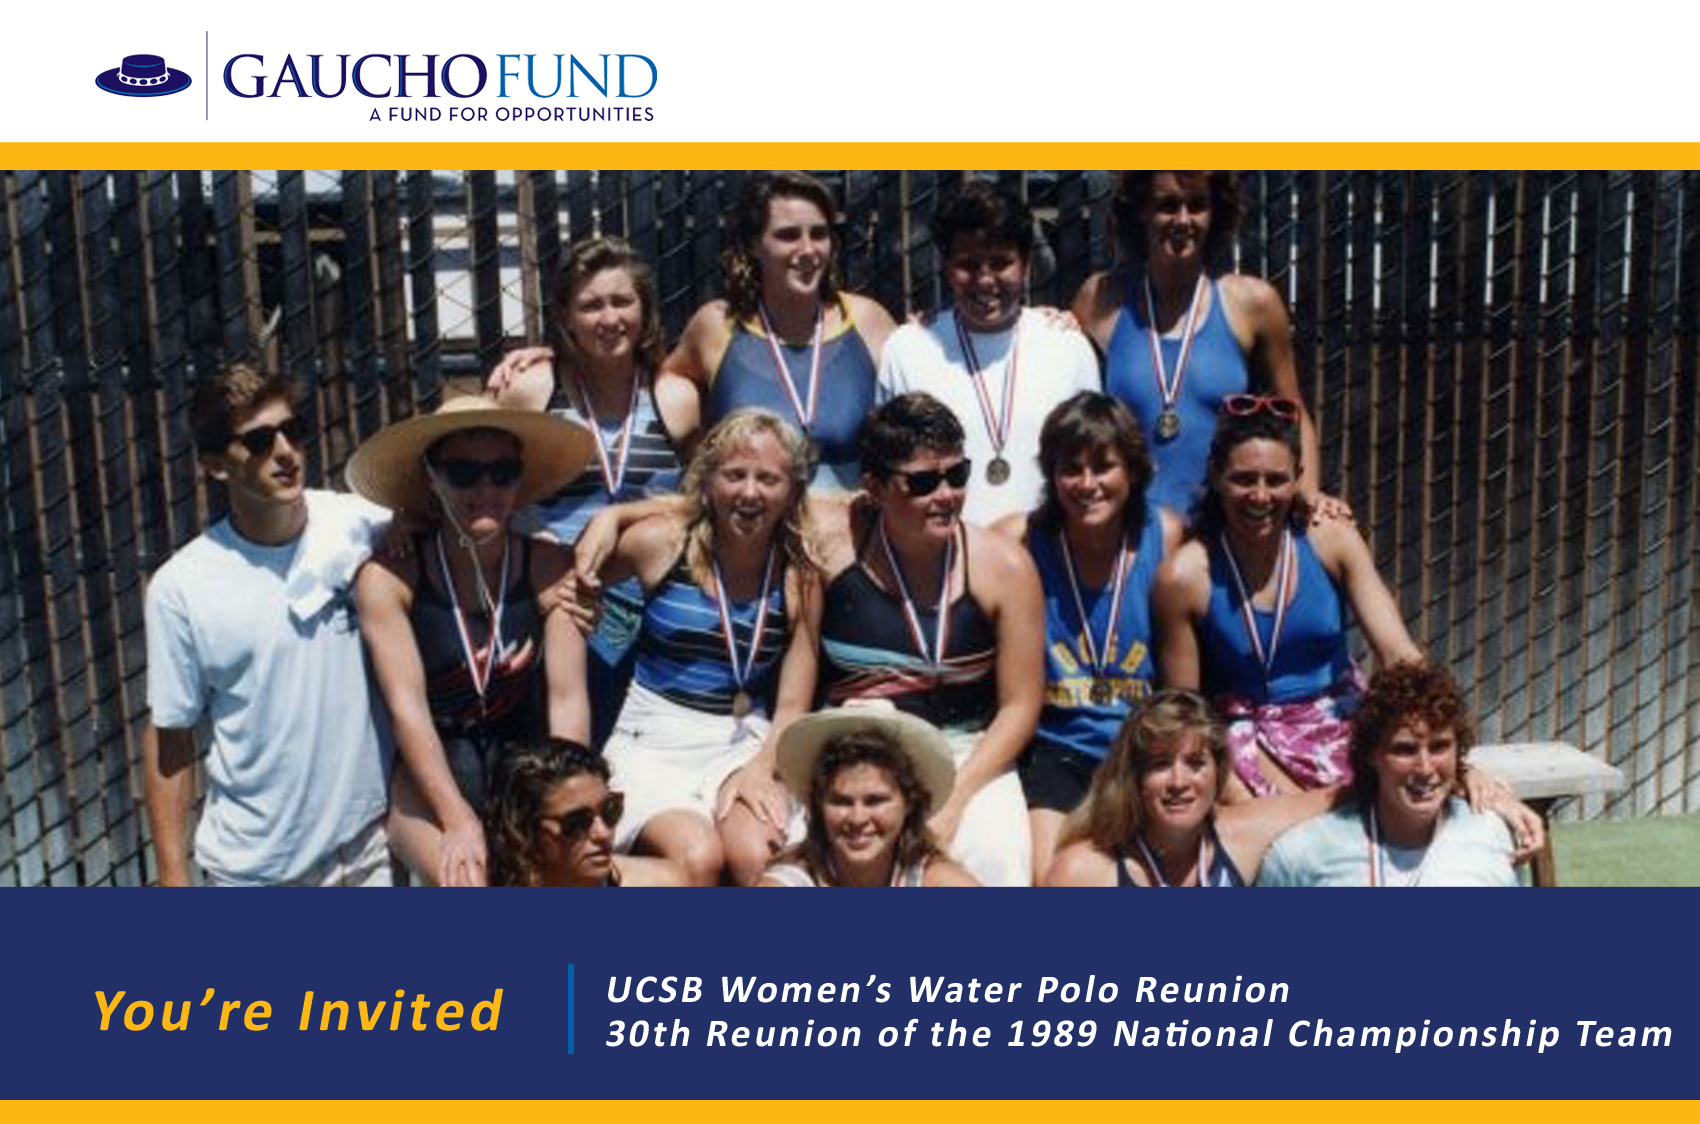 UCSB Women's Water Polo to Celebrate 1989 National Championship at Upcoming Alumni Reunion